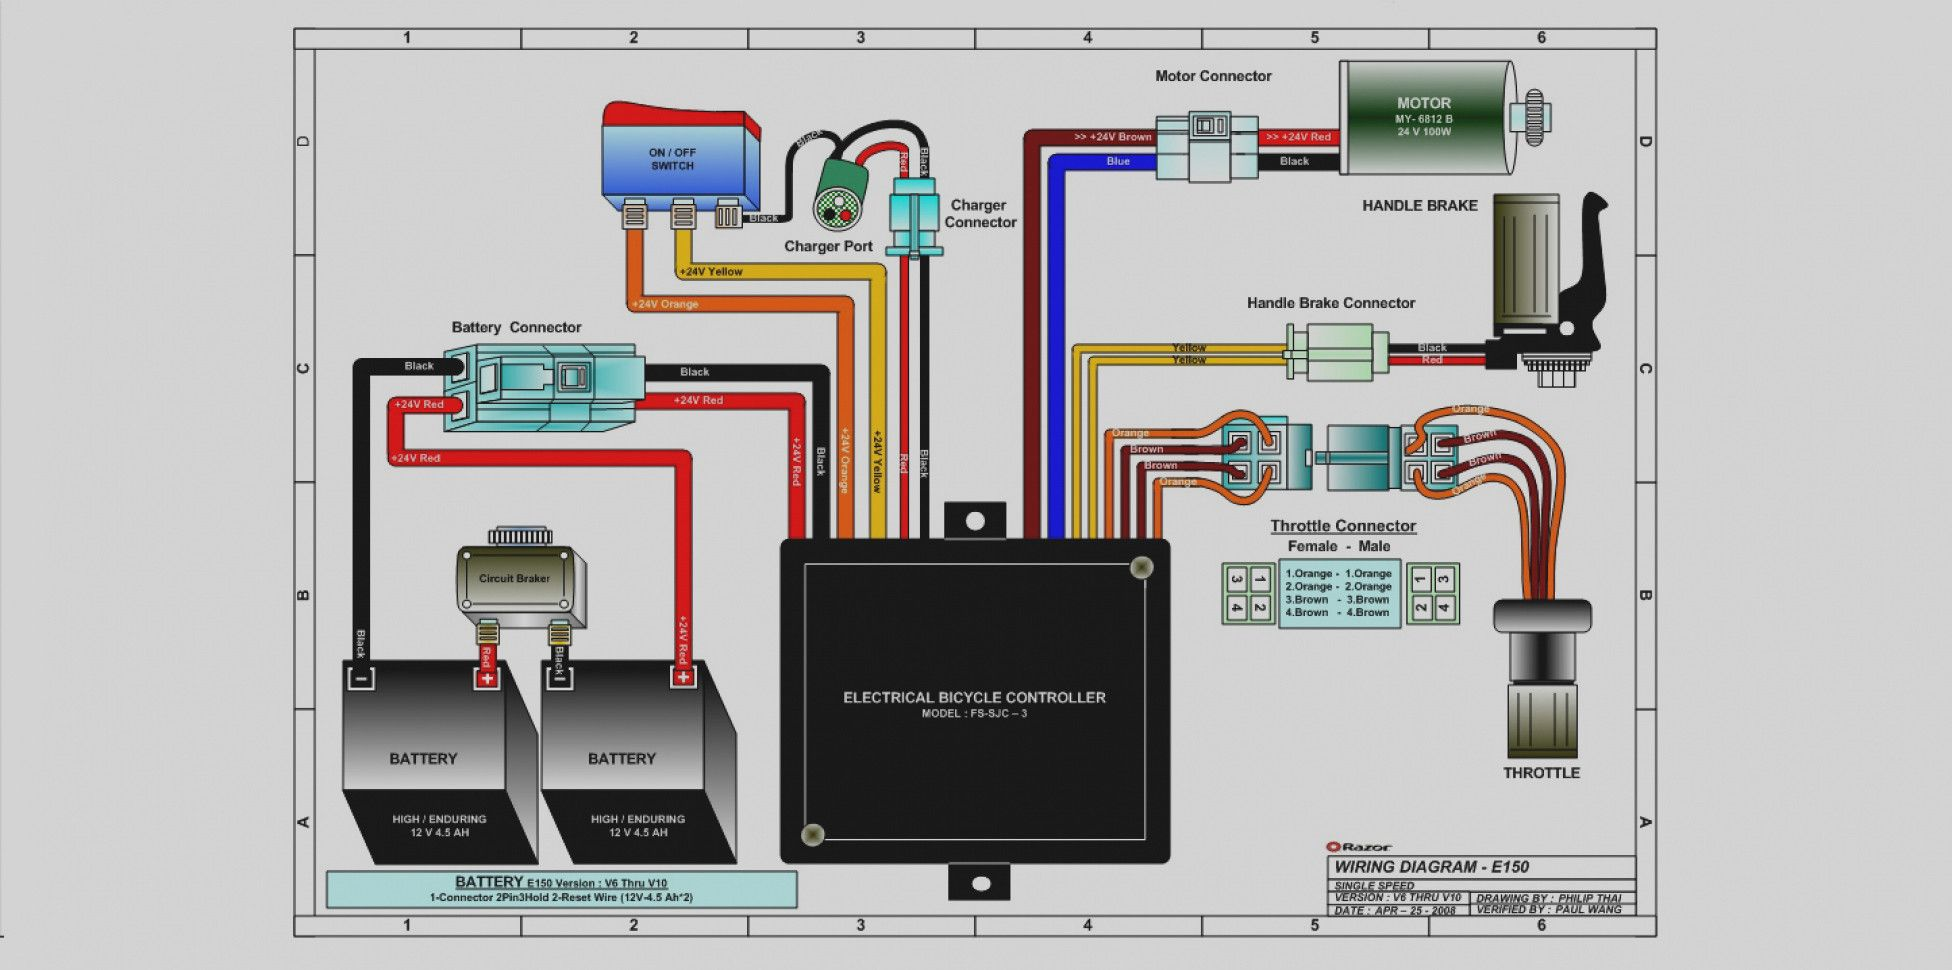 Rascal 245 Mobility Scooter Wiring Diagram